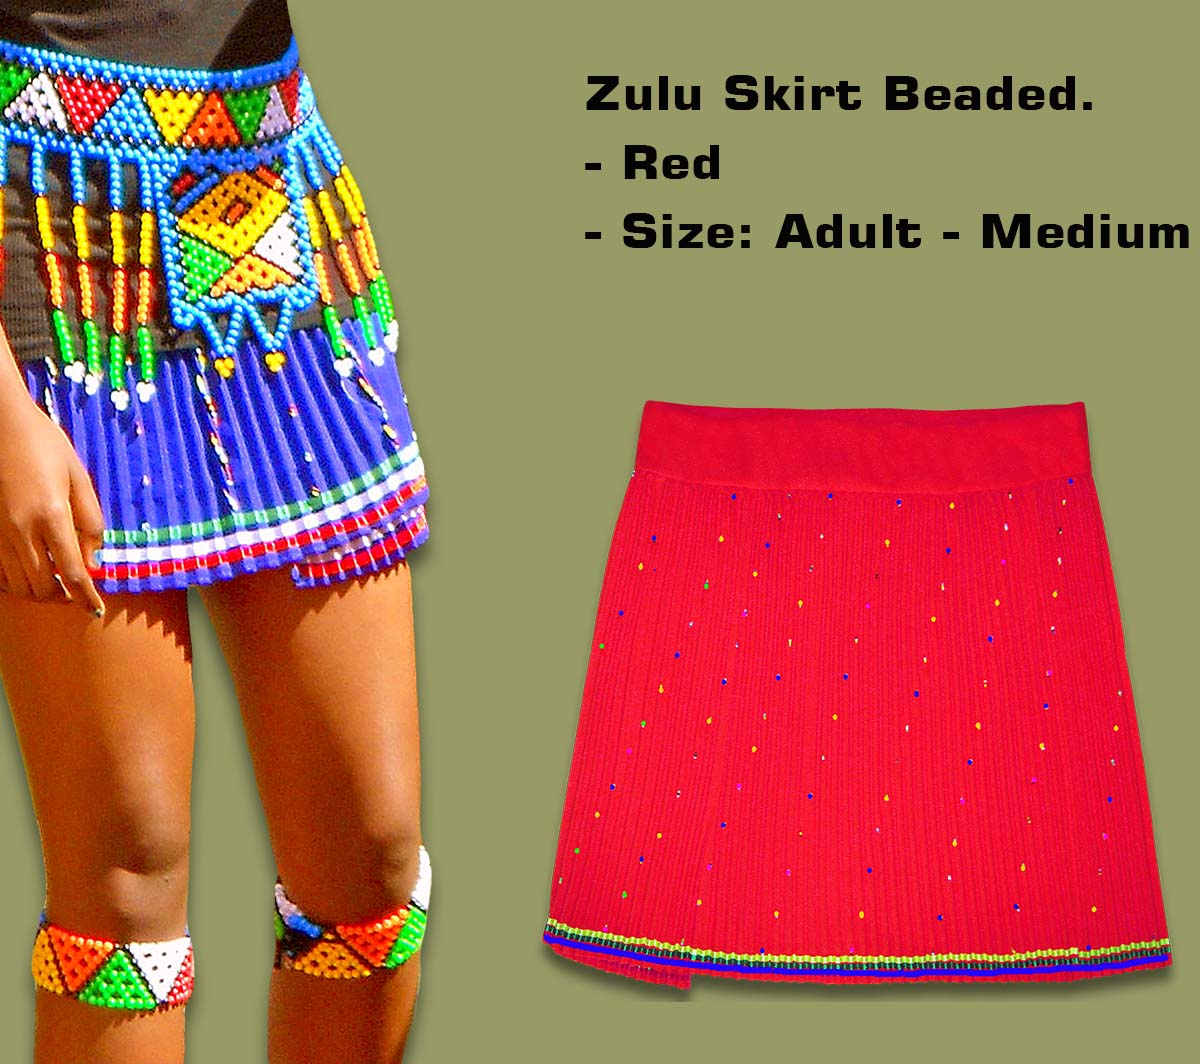 Beaded Zulu Skirt Adult Red Medium